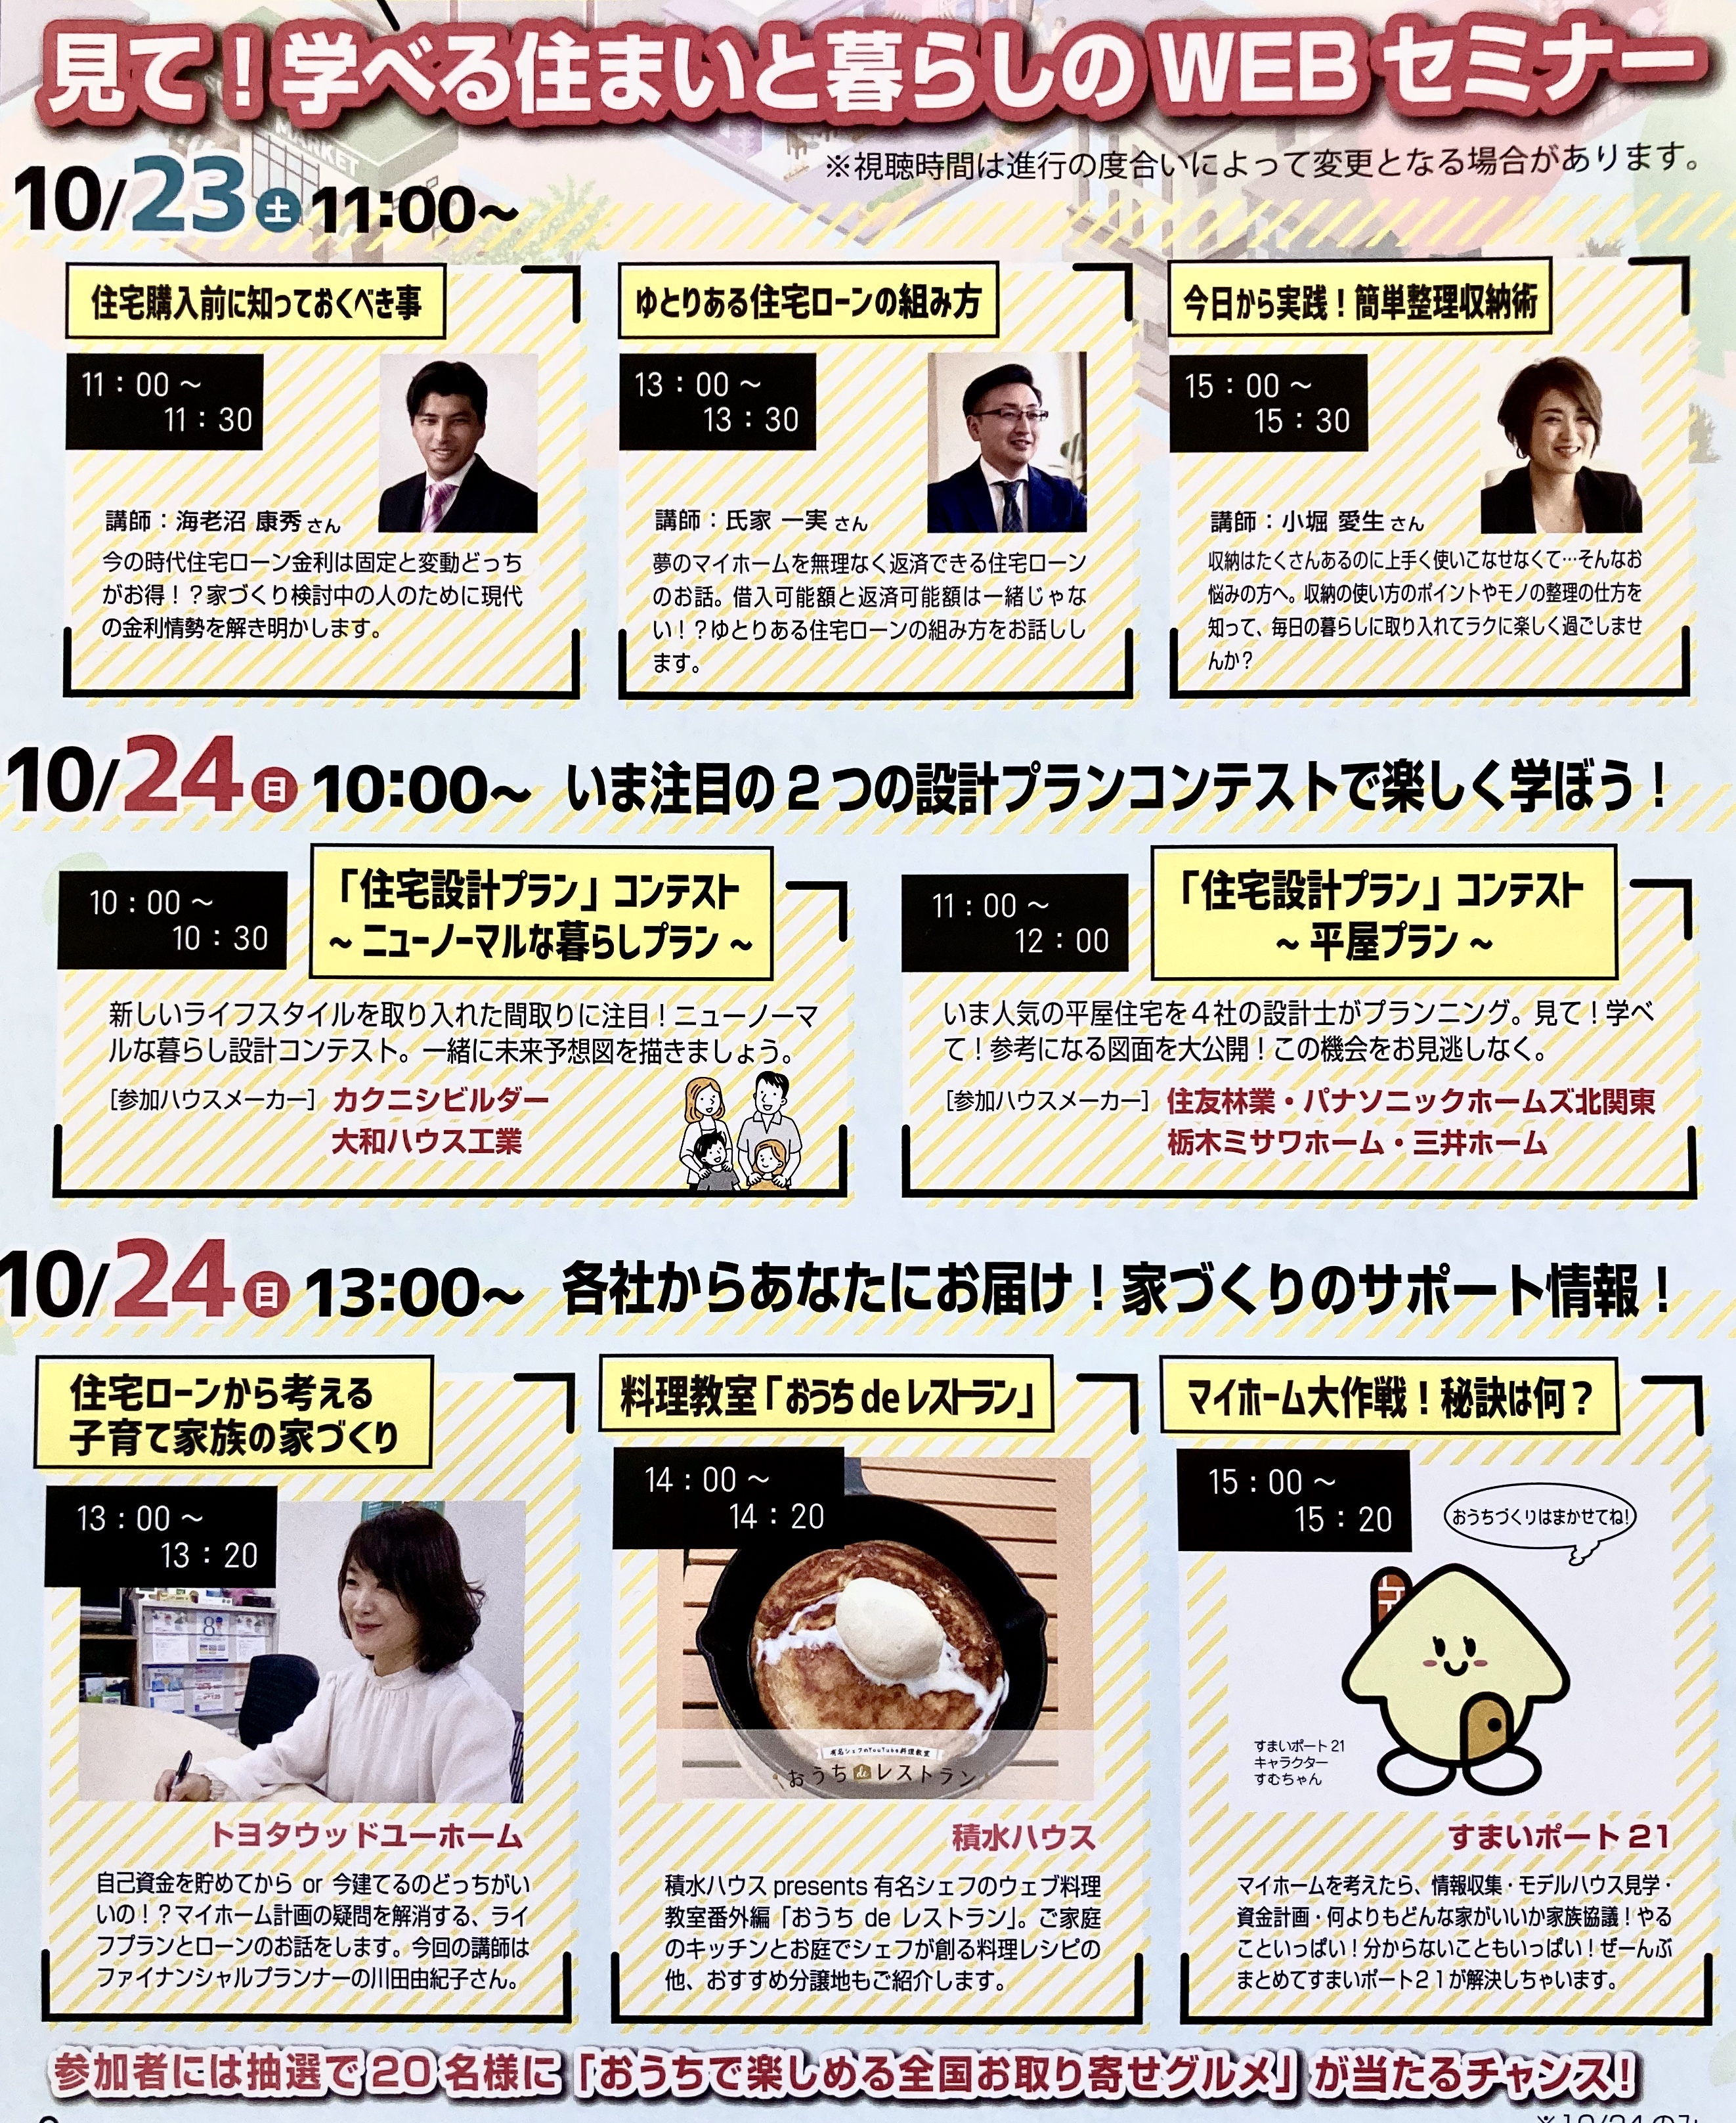 ONLINEトーク会開催します(^_-)-☆